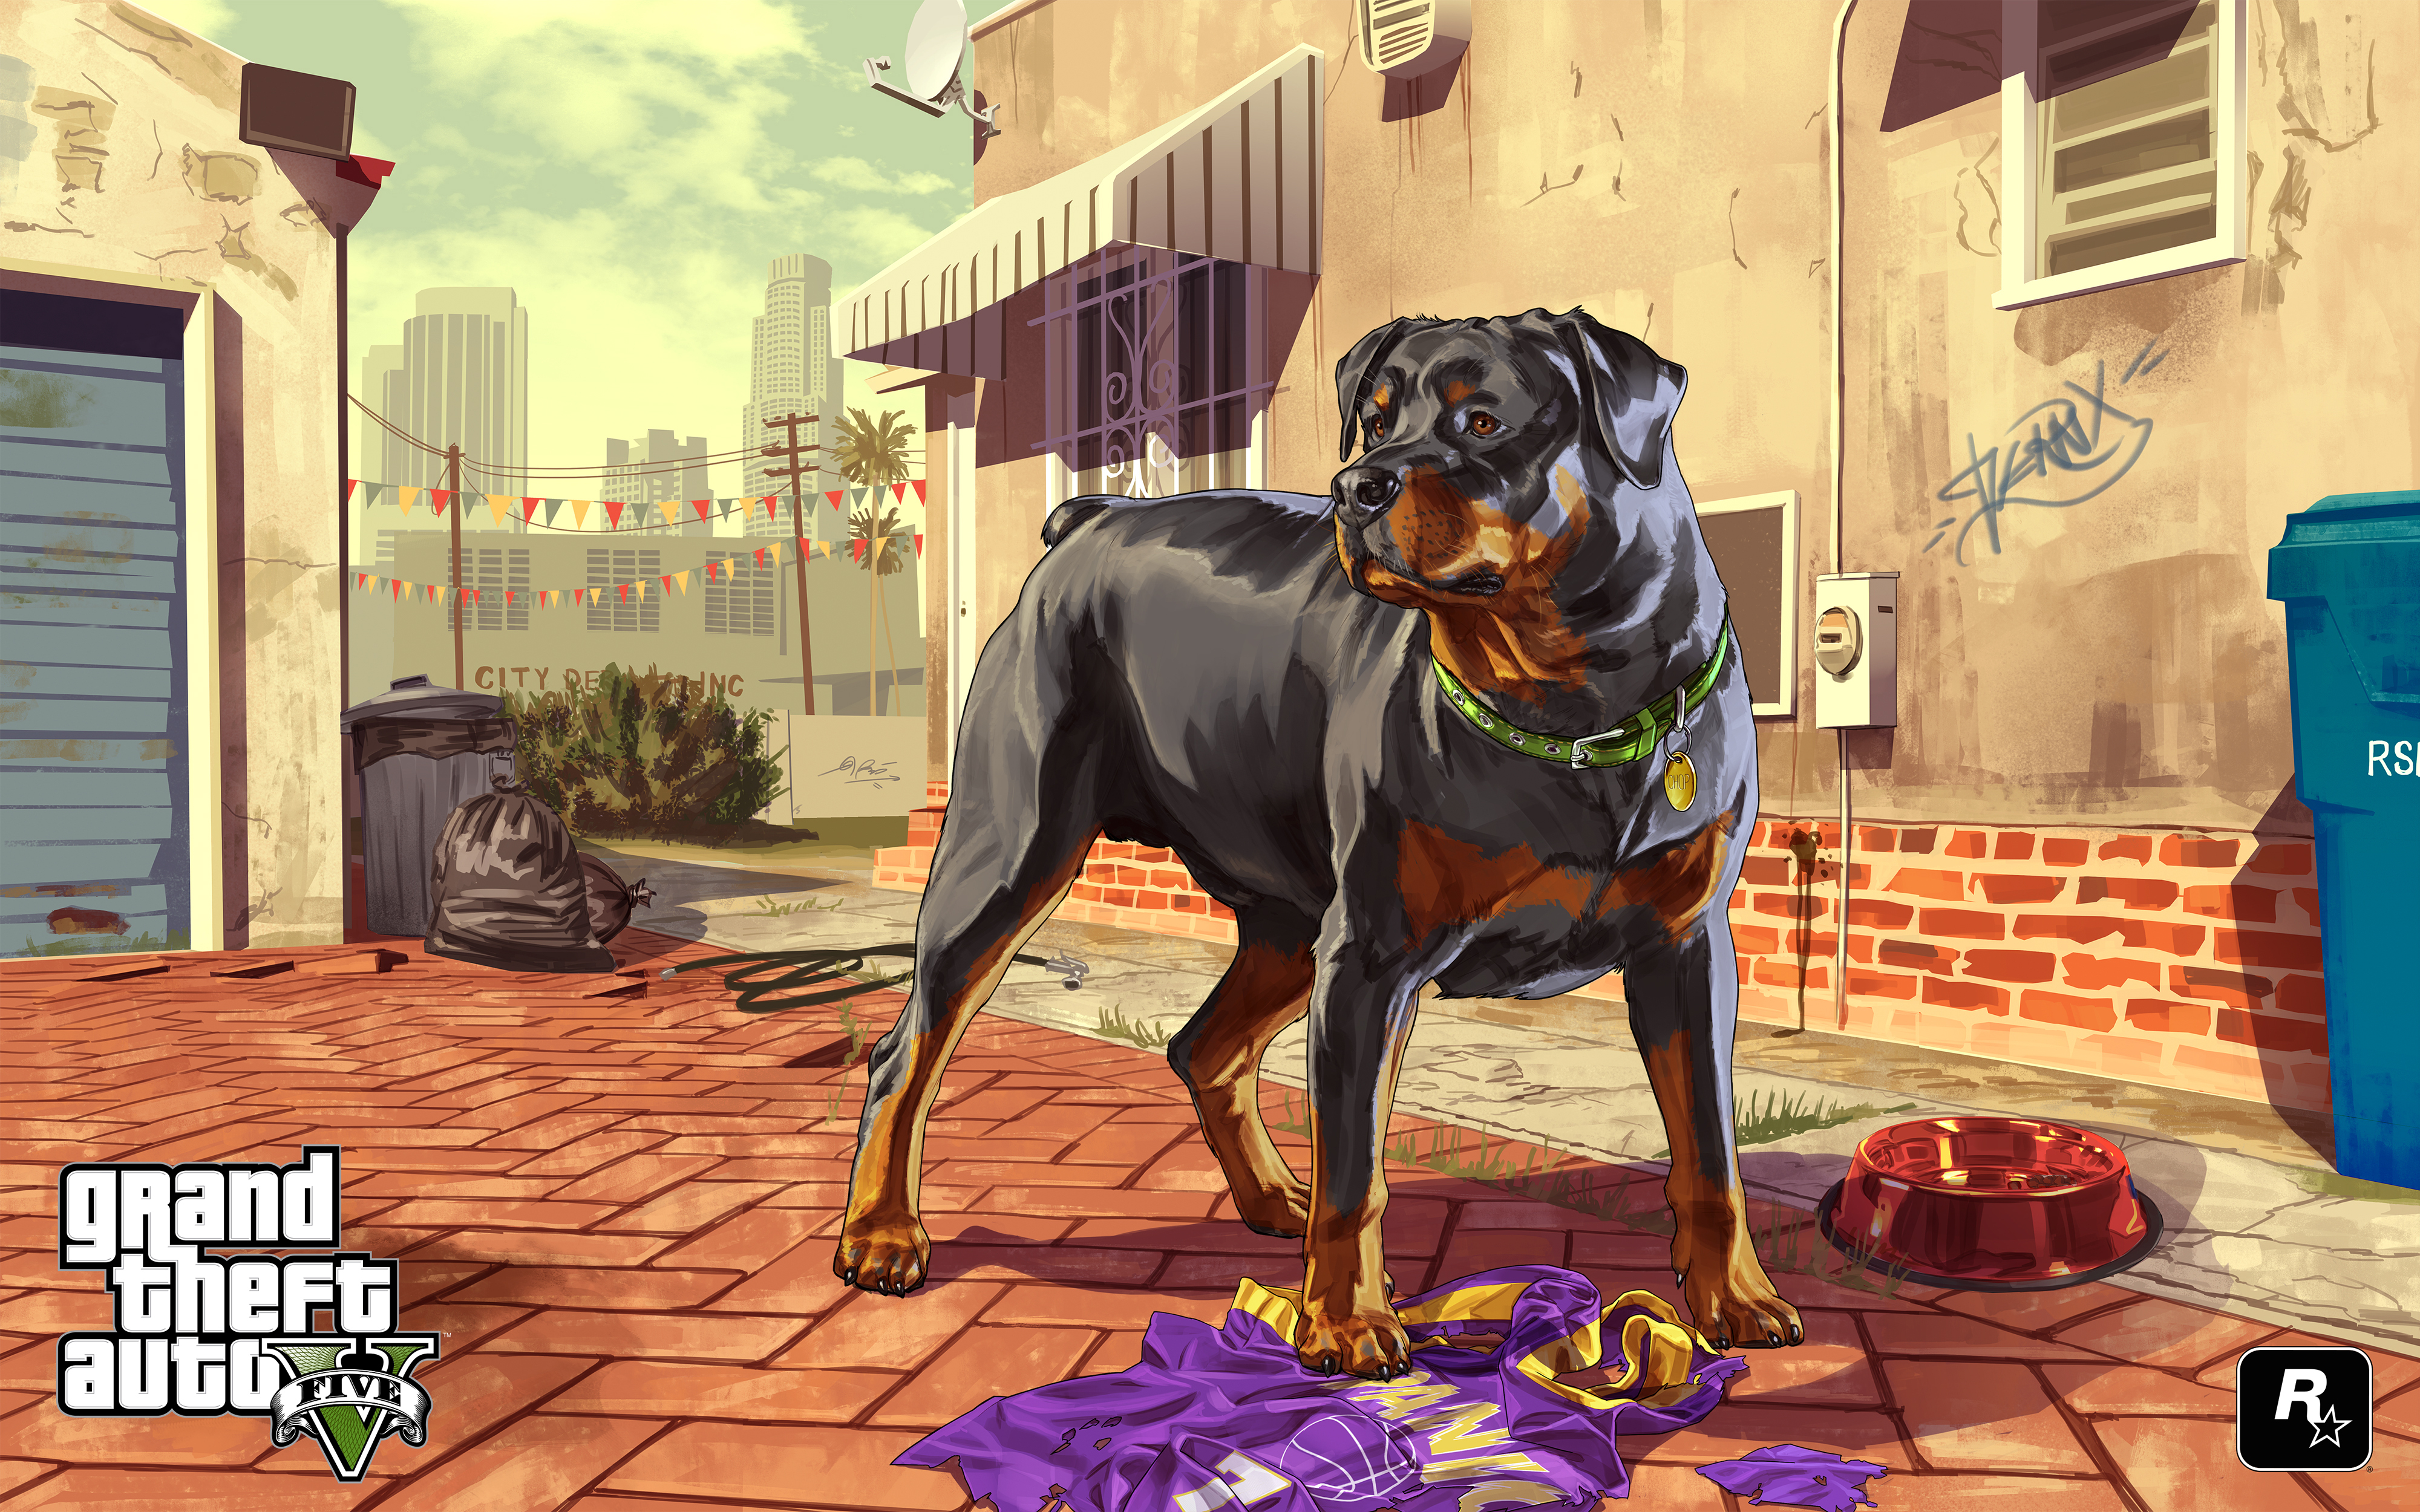 grand theft auto gta 5 dogs vector graphics games wallpaper